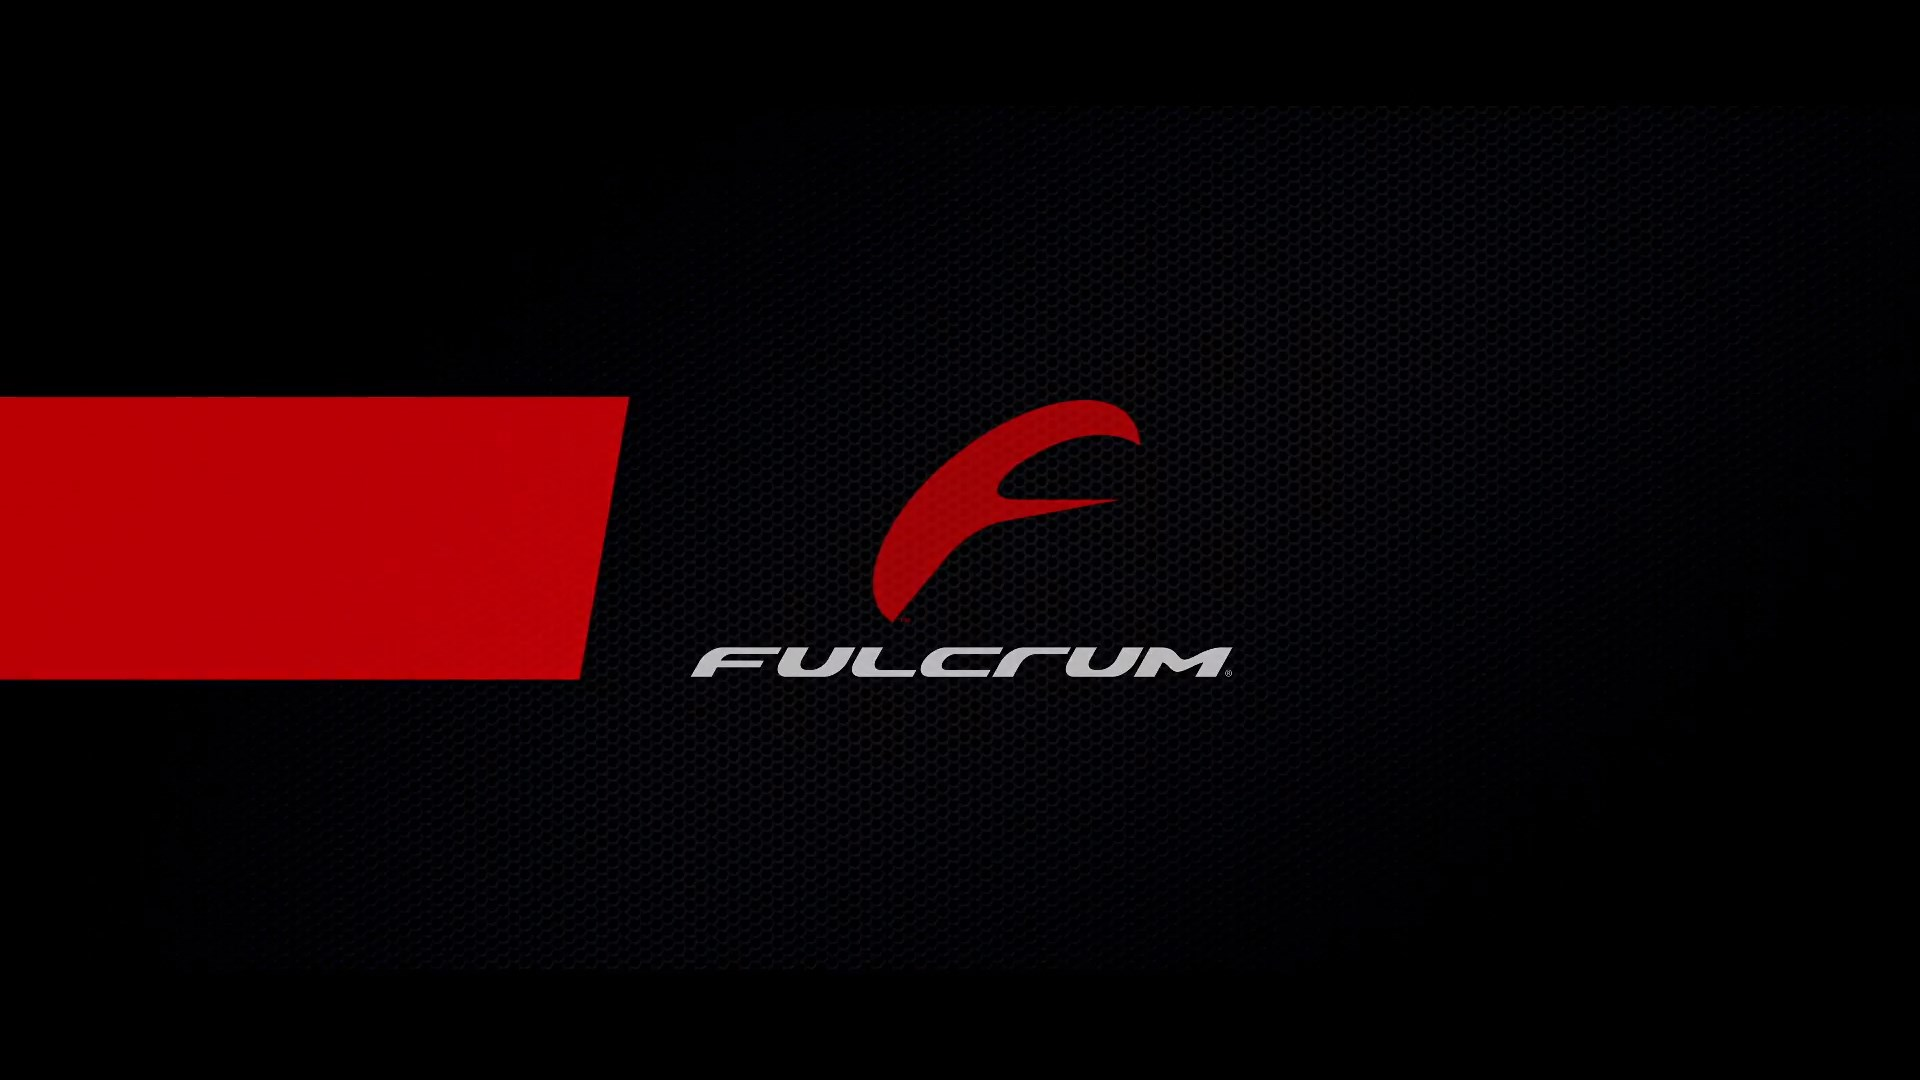 Fulcrum RED ZONE 5